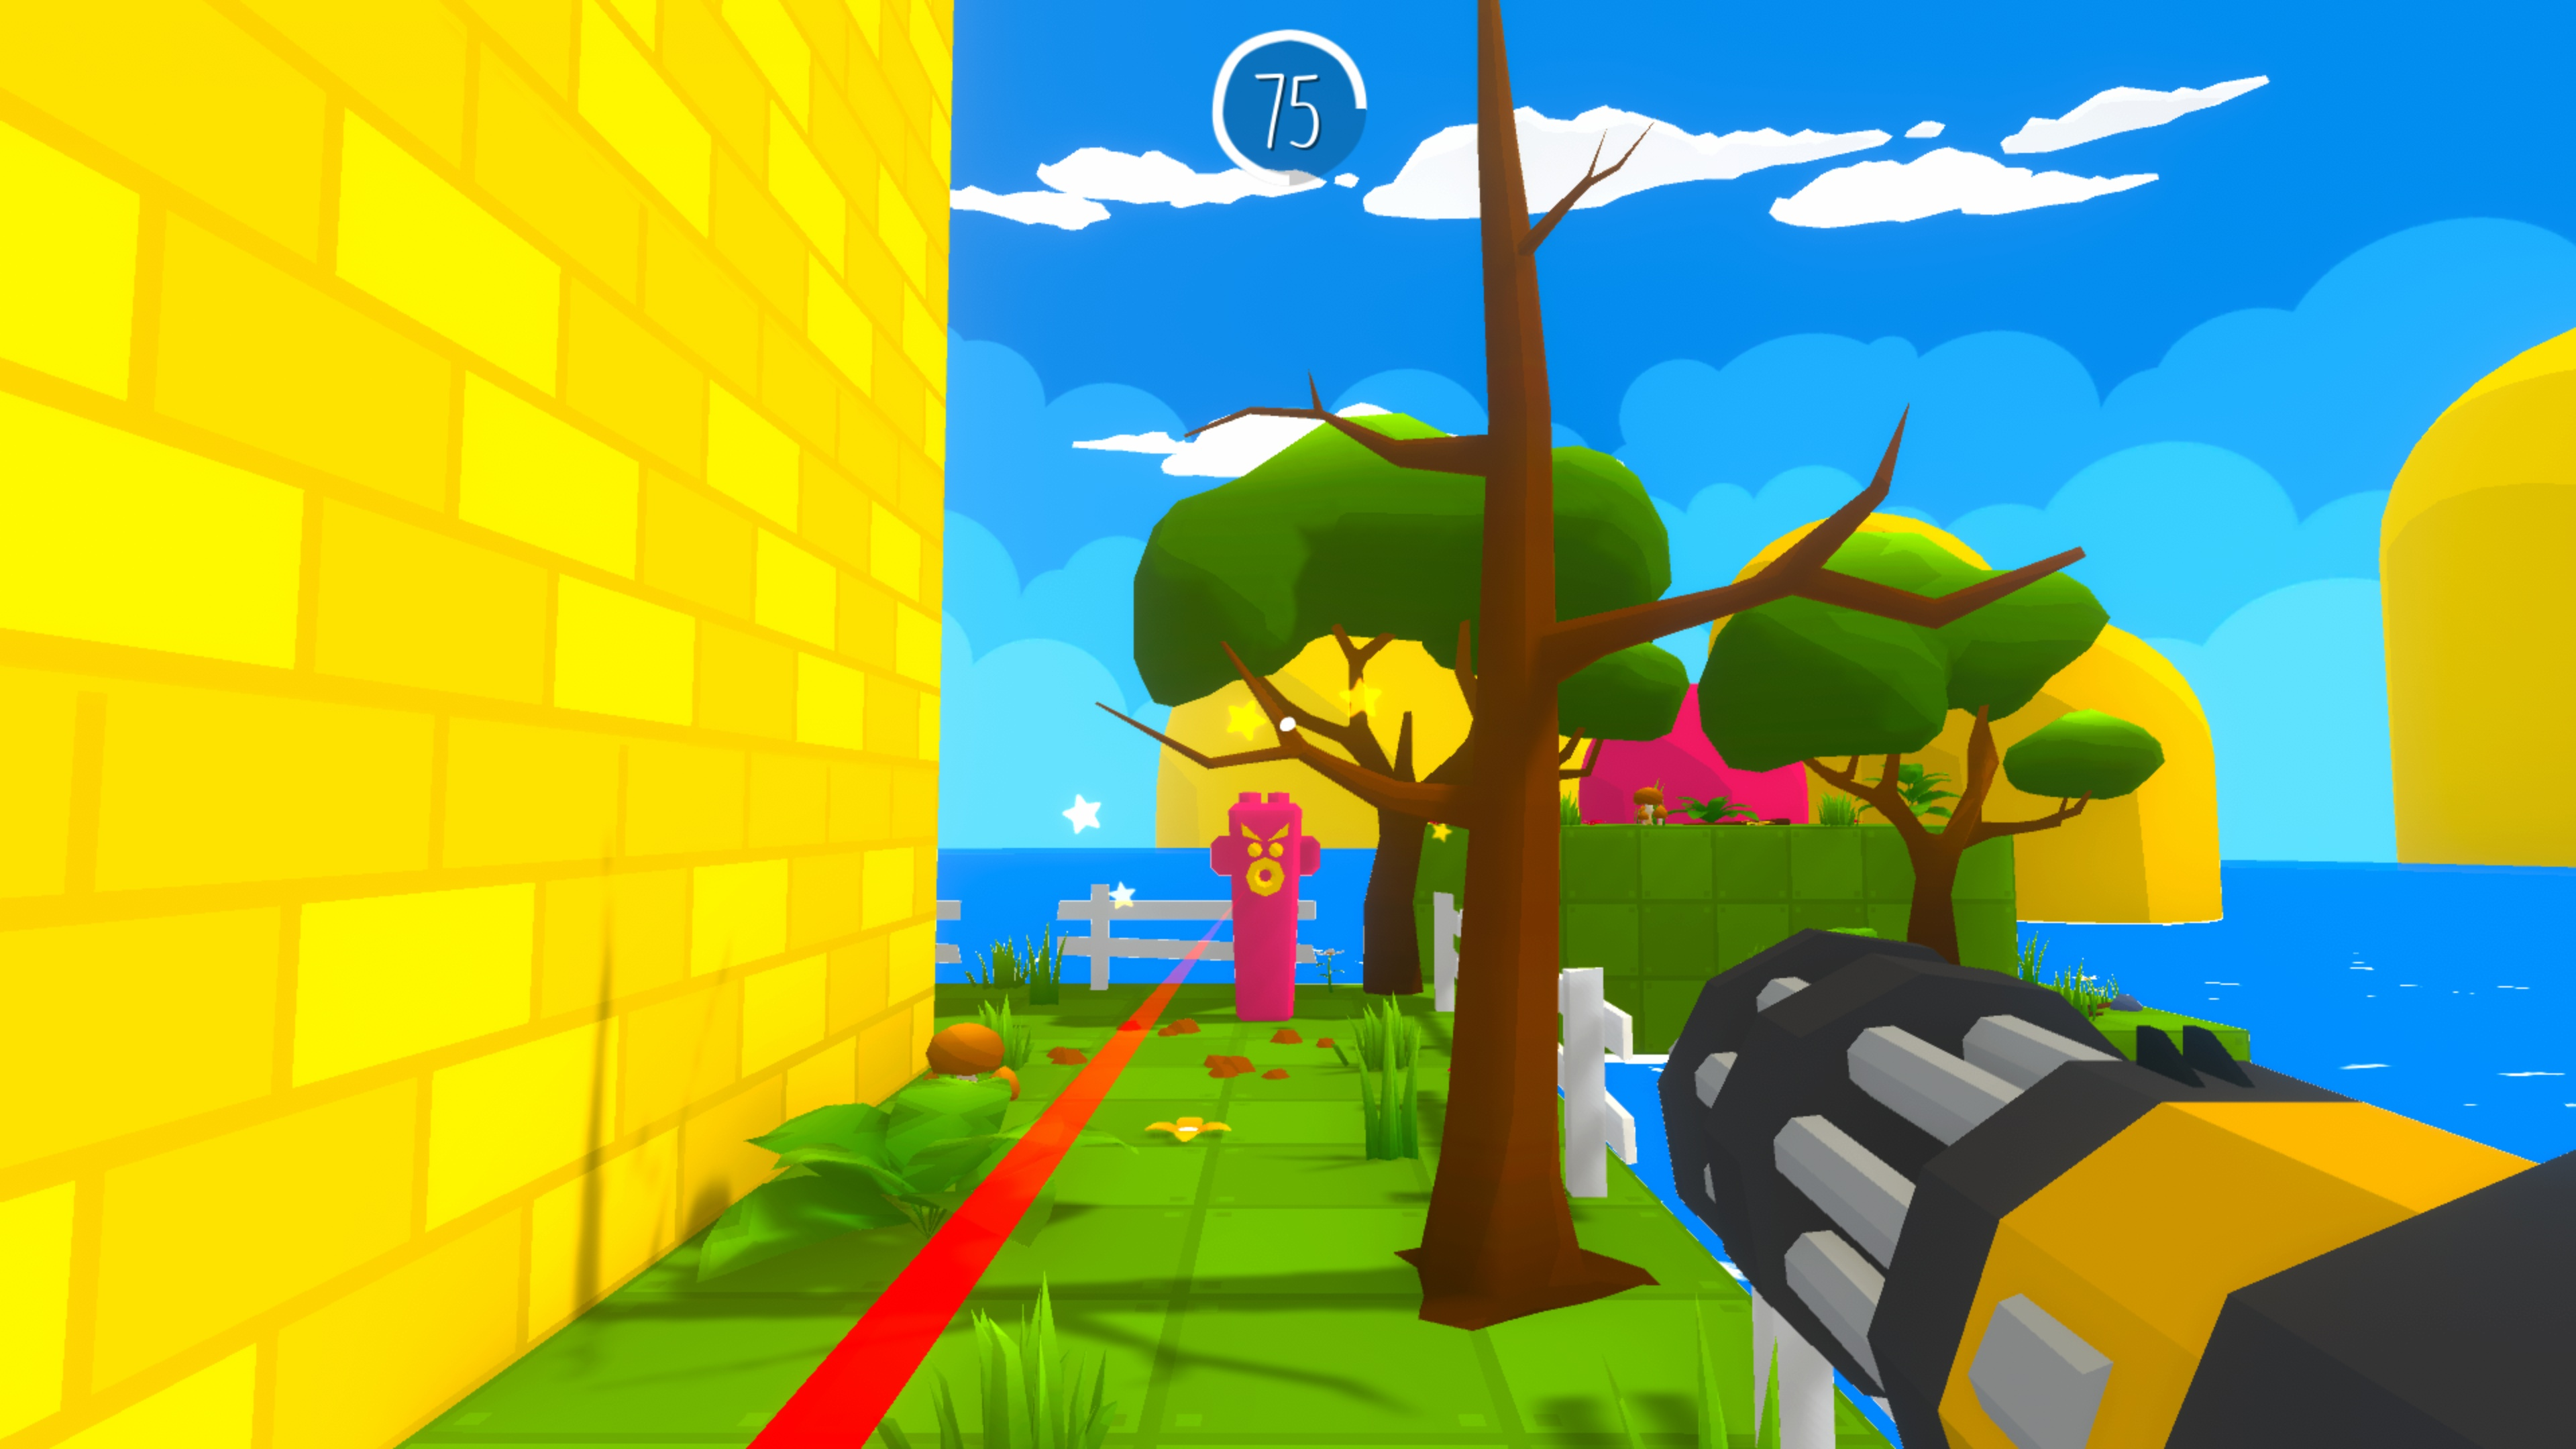 Скриншот №3 к Bouncy Bullets 2 PS4 and PS5